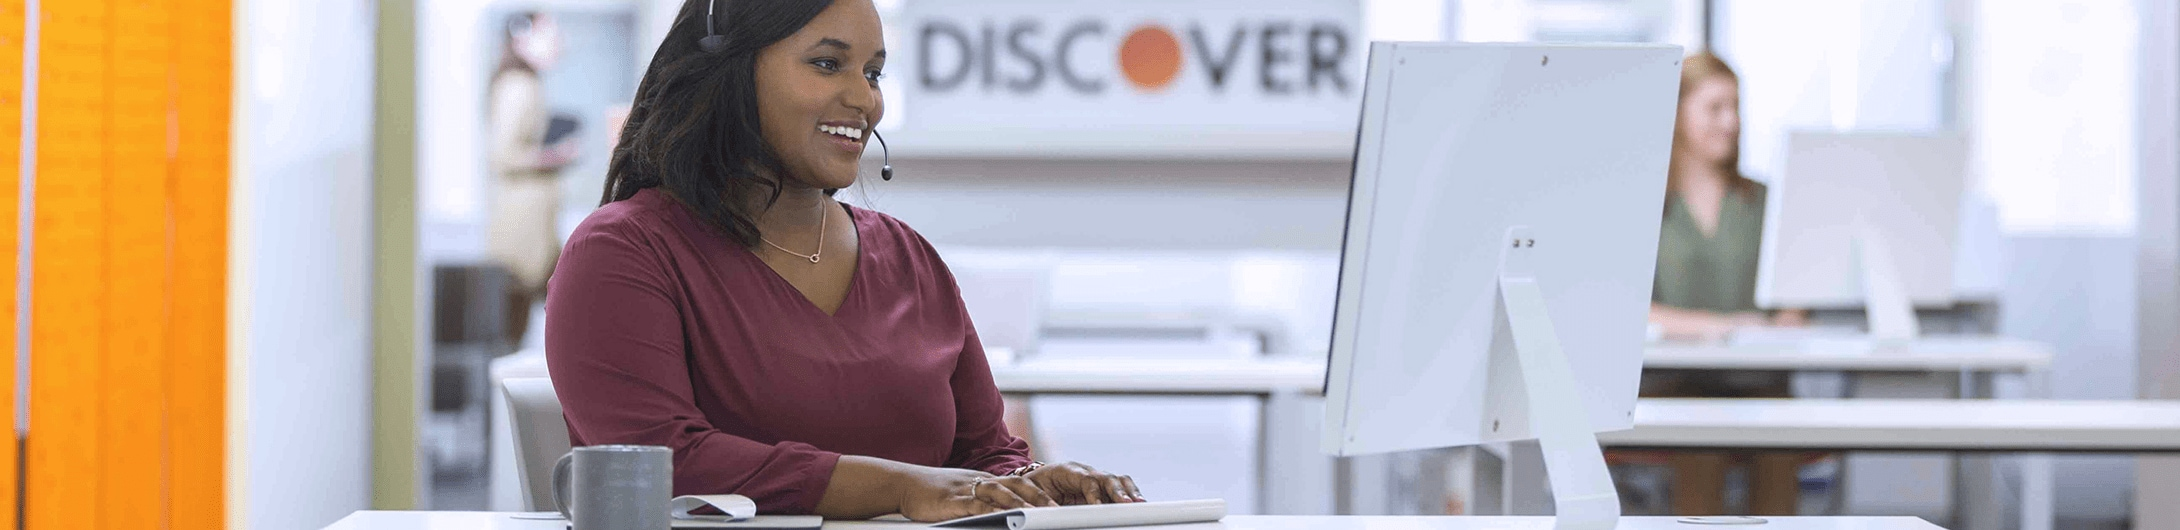 Discover Credit Card Help Center